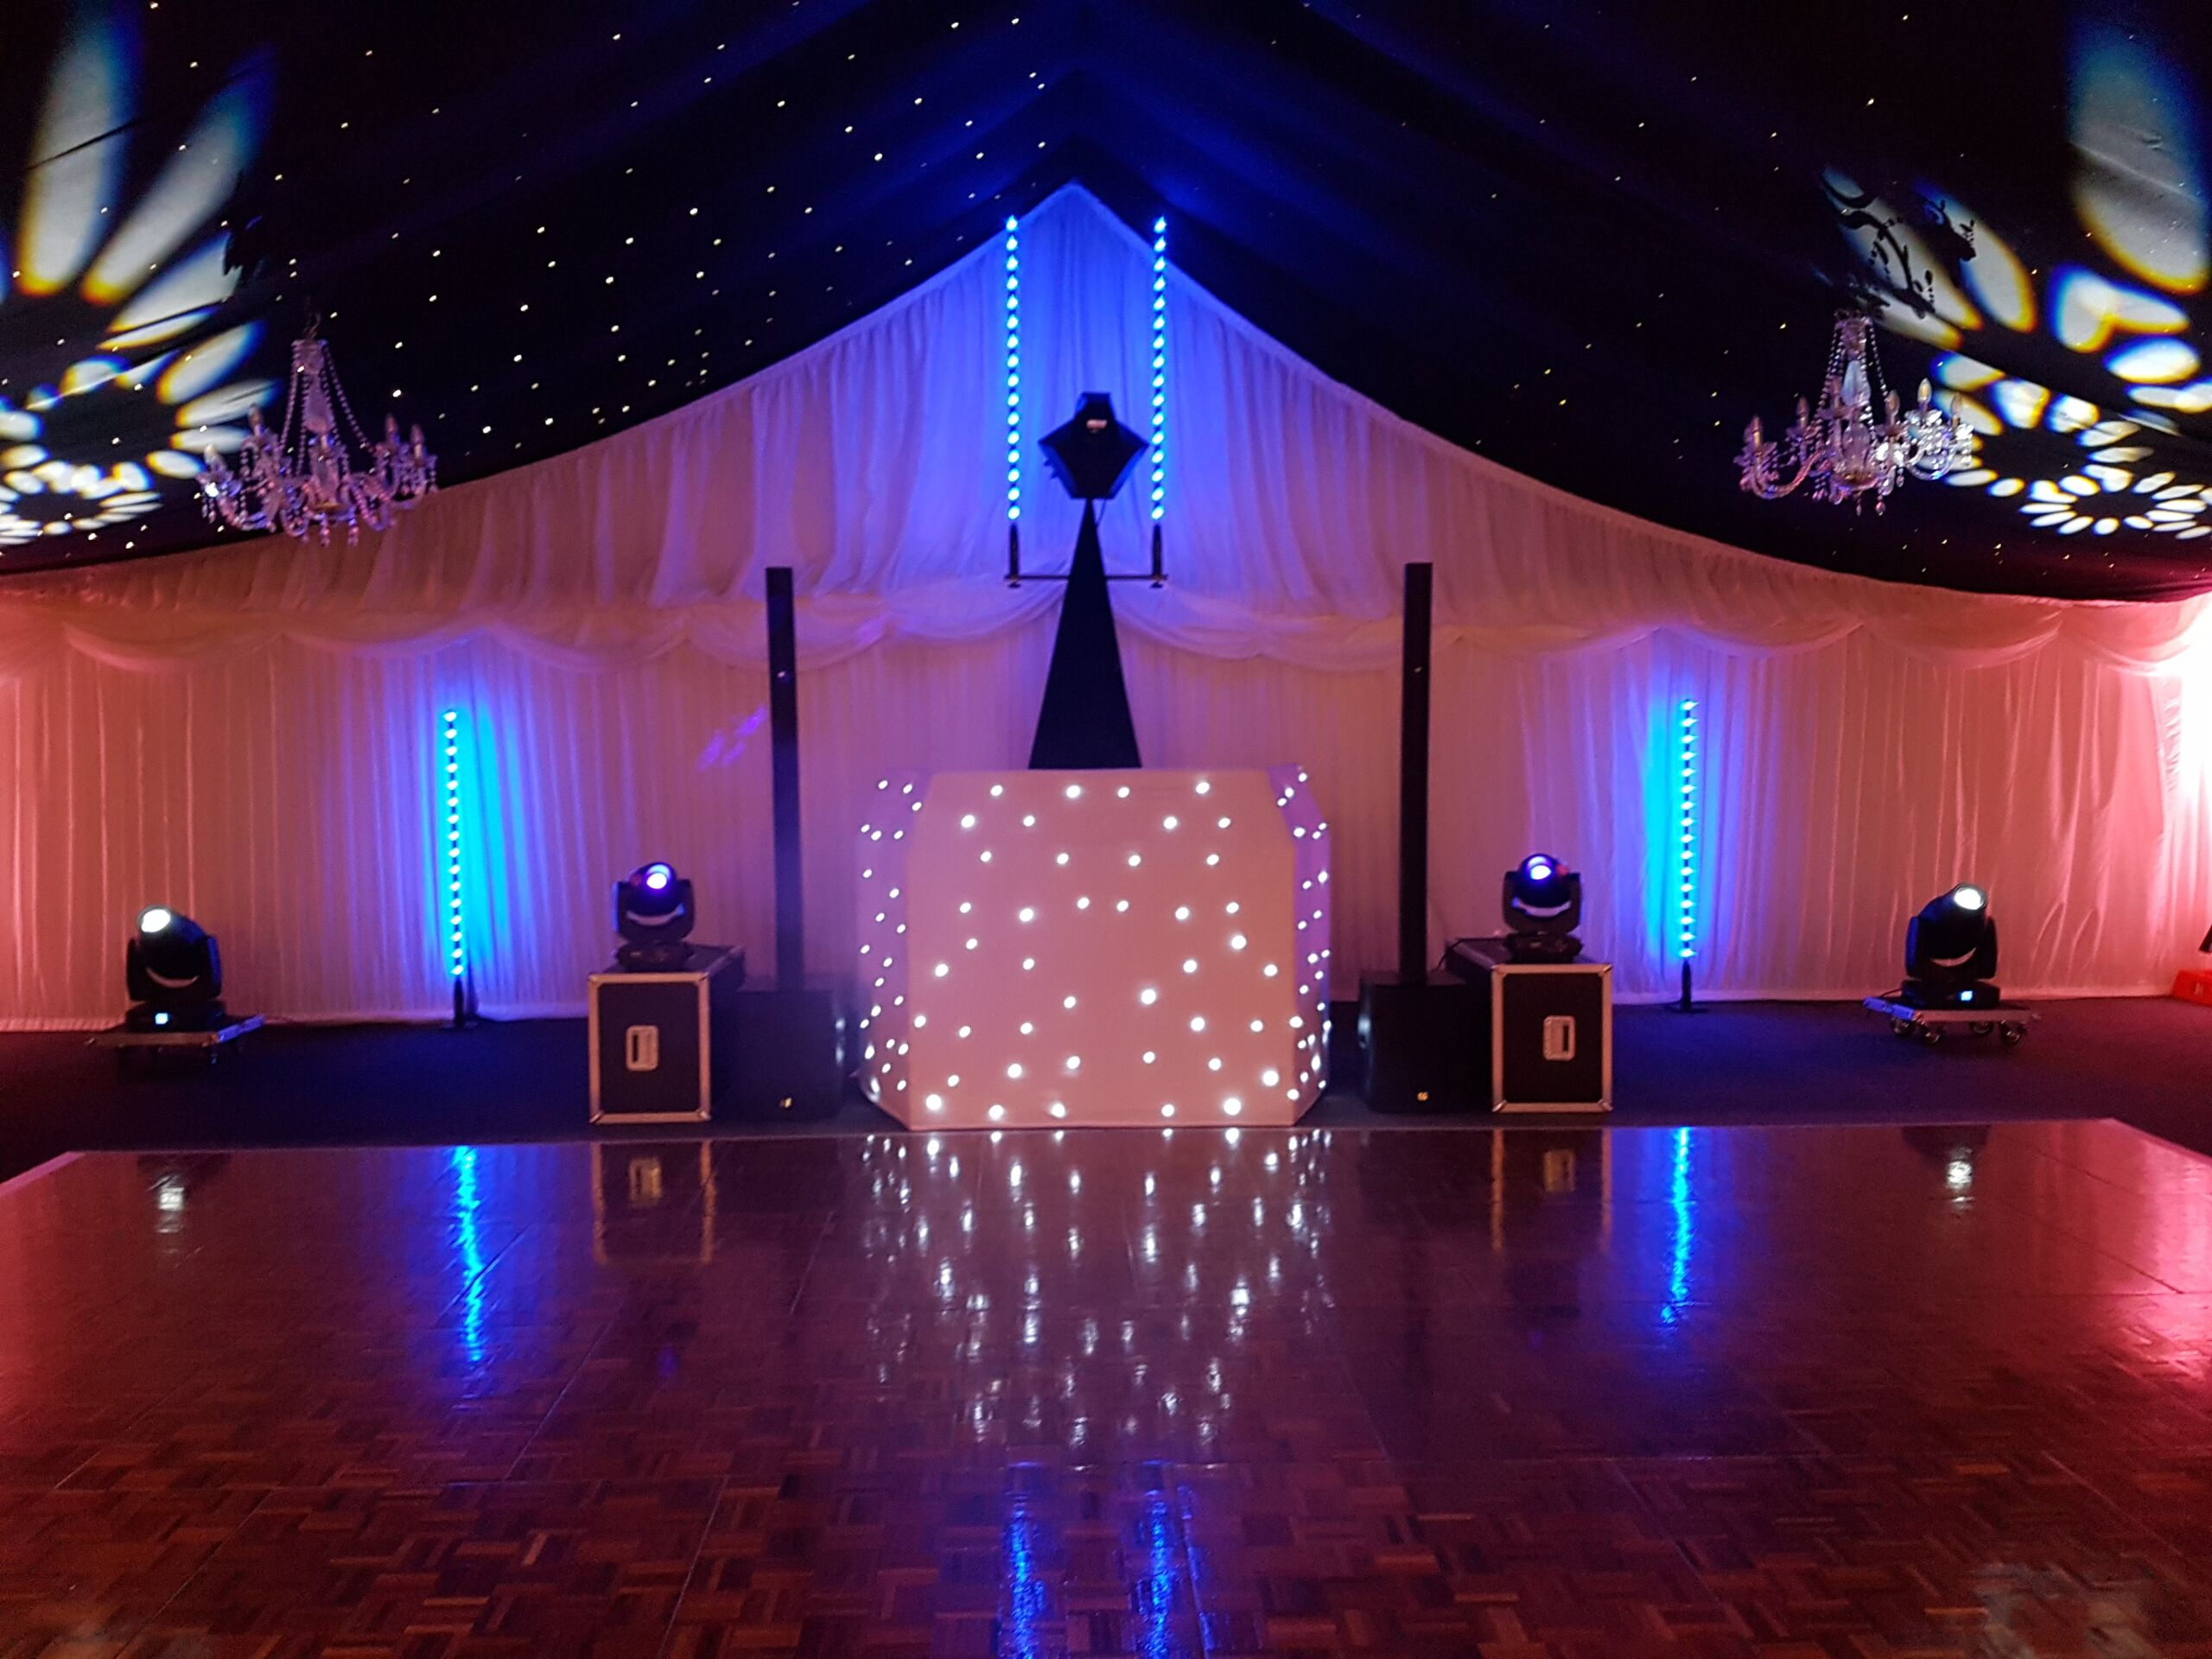 Mobile Disco Suffolk with uplighting and drapes